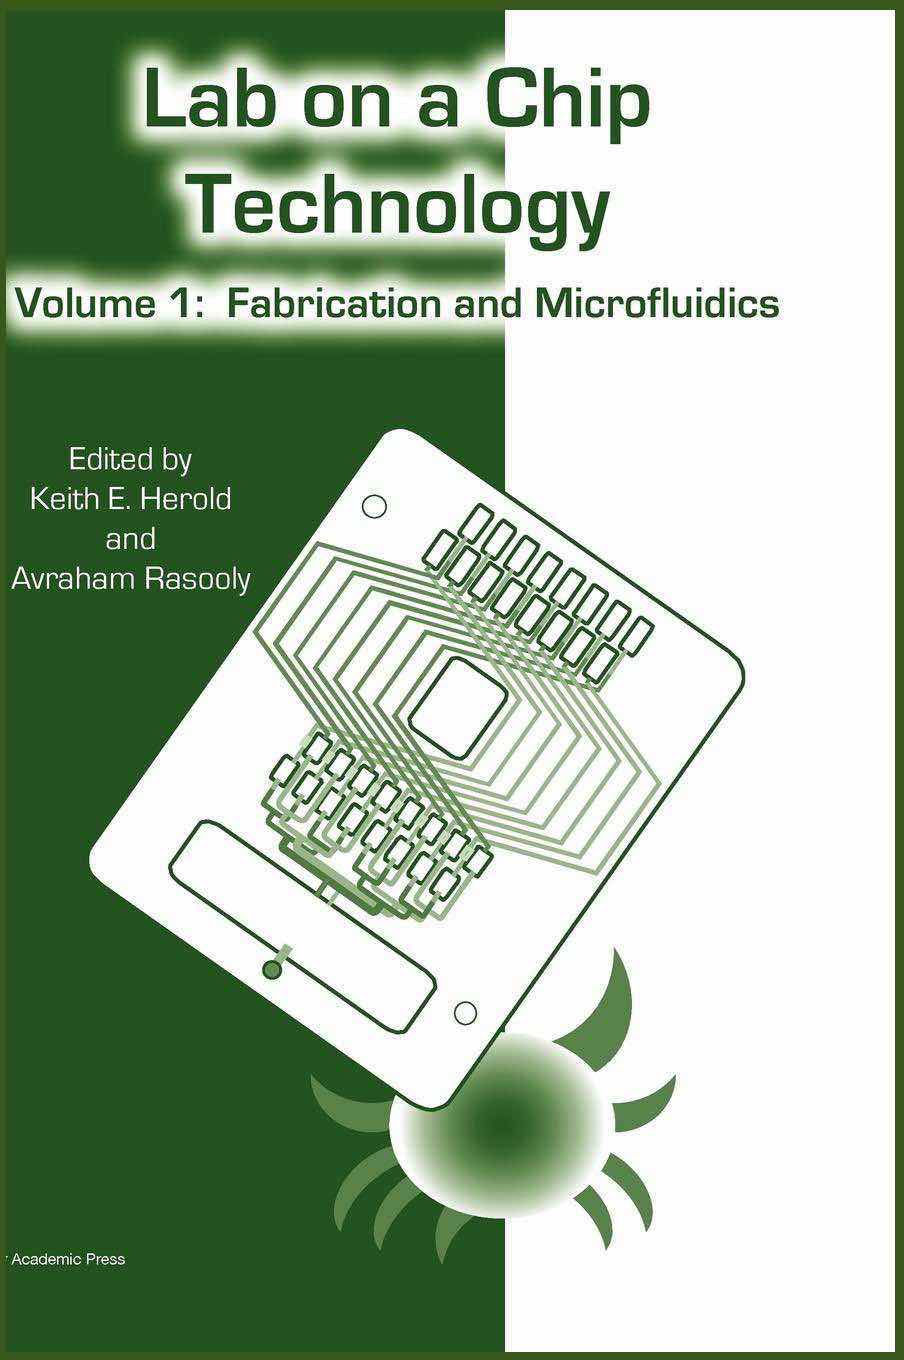 Lab-on-a-Chip Technology (Vol. 1): Fabrication and Microfluidics